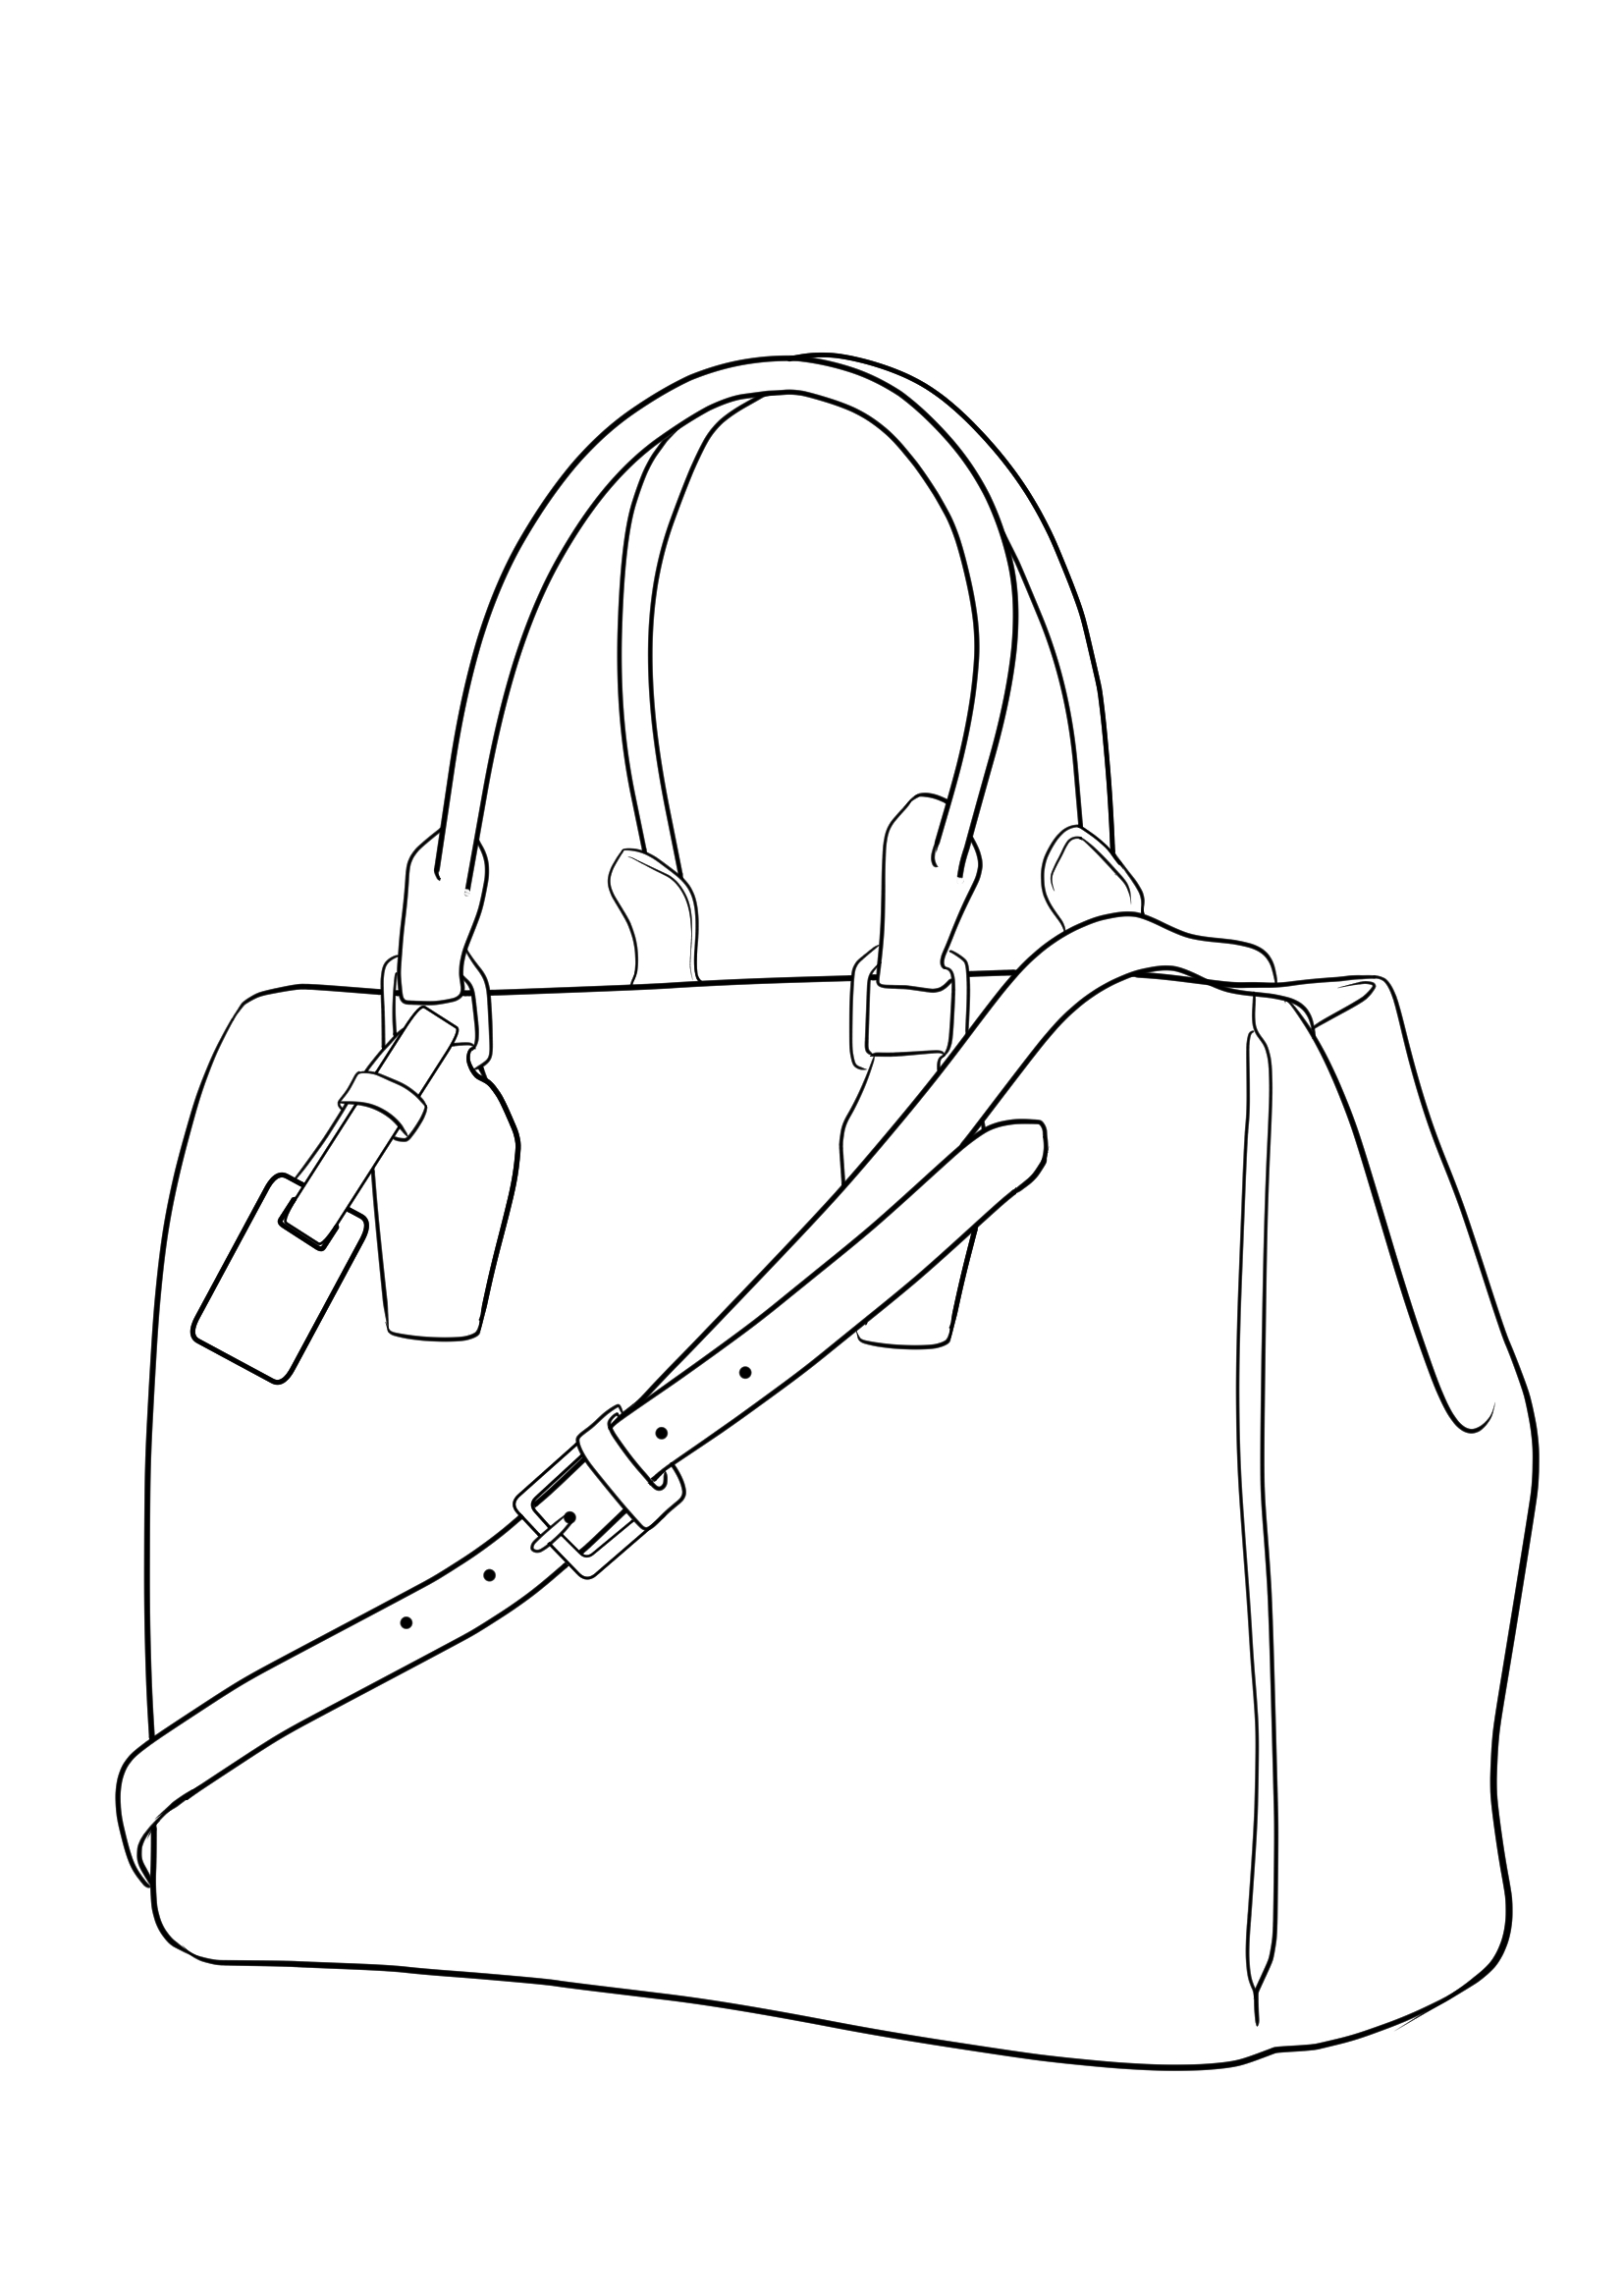 Bags Drawing at GetDrawings.com | Free for personal use Bags Drawing ...